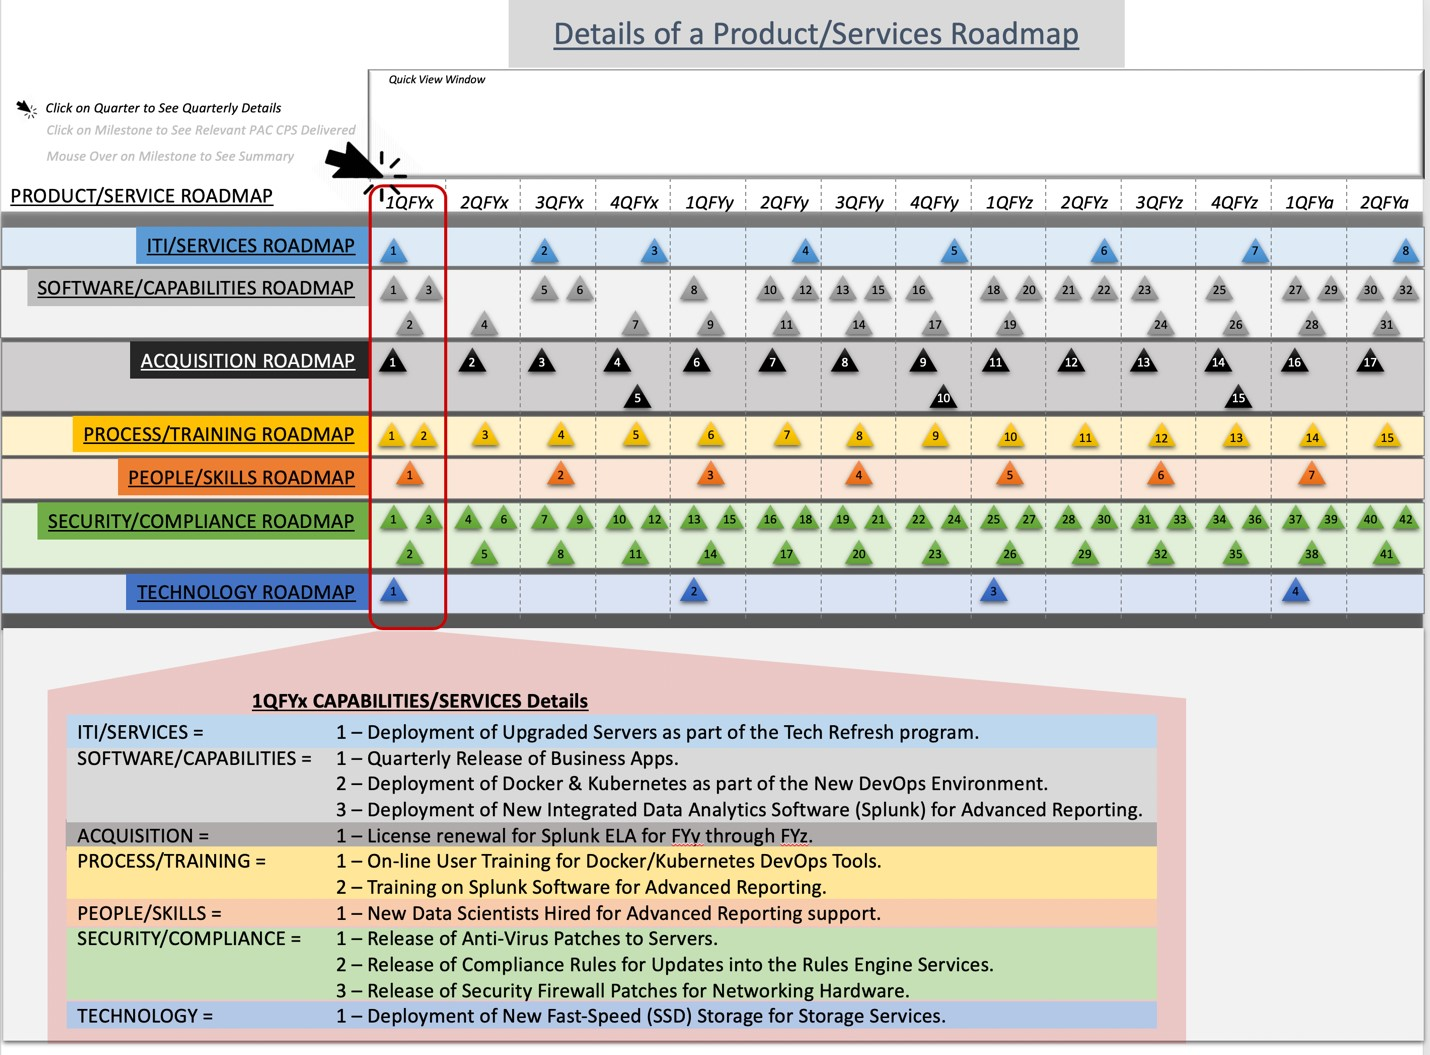 Figure 2a. Product/Services Roadmap with Quarterly Details Denotes